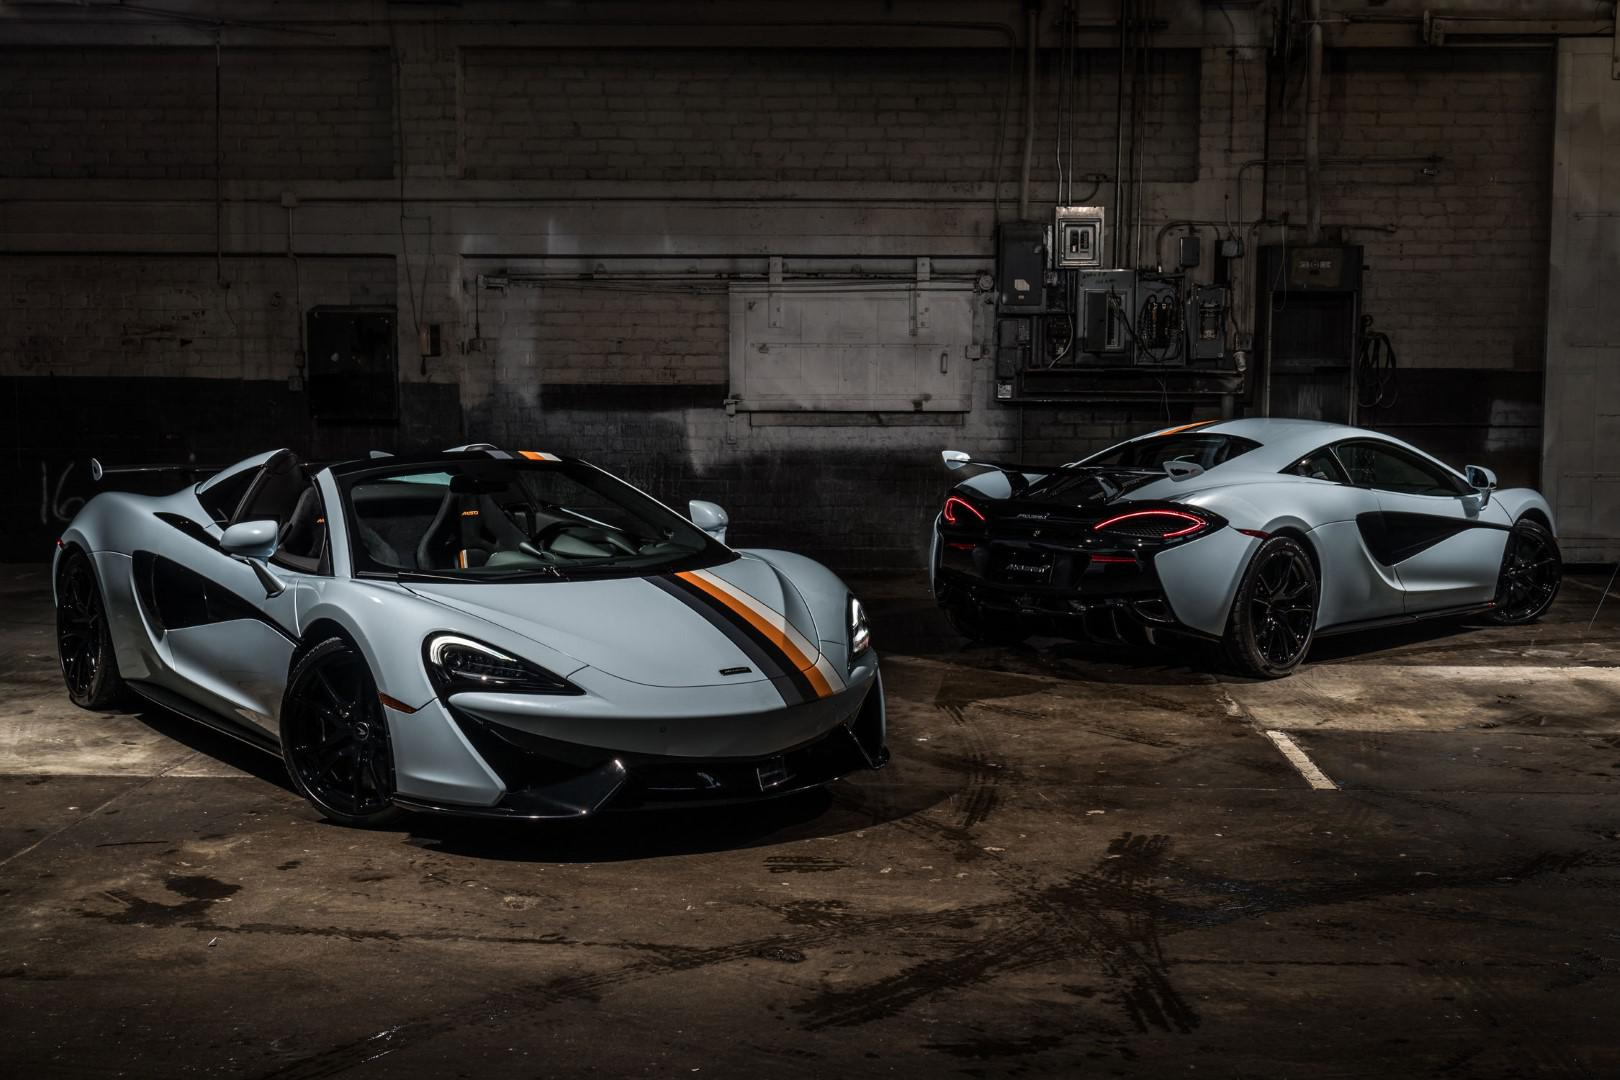 mclaren-special-operations-devoile-une-nouvelle-collection-racing-through-the-ages-928-1.jpg